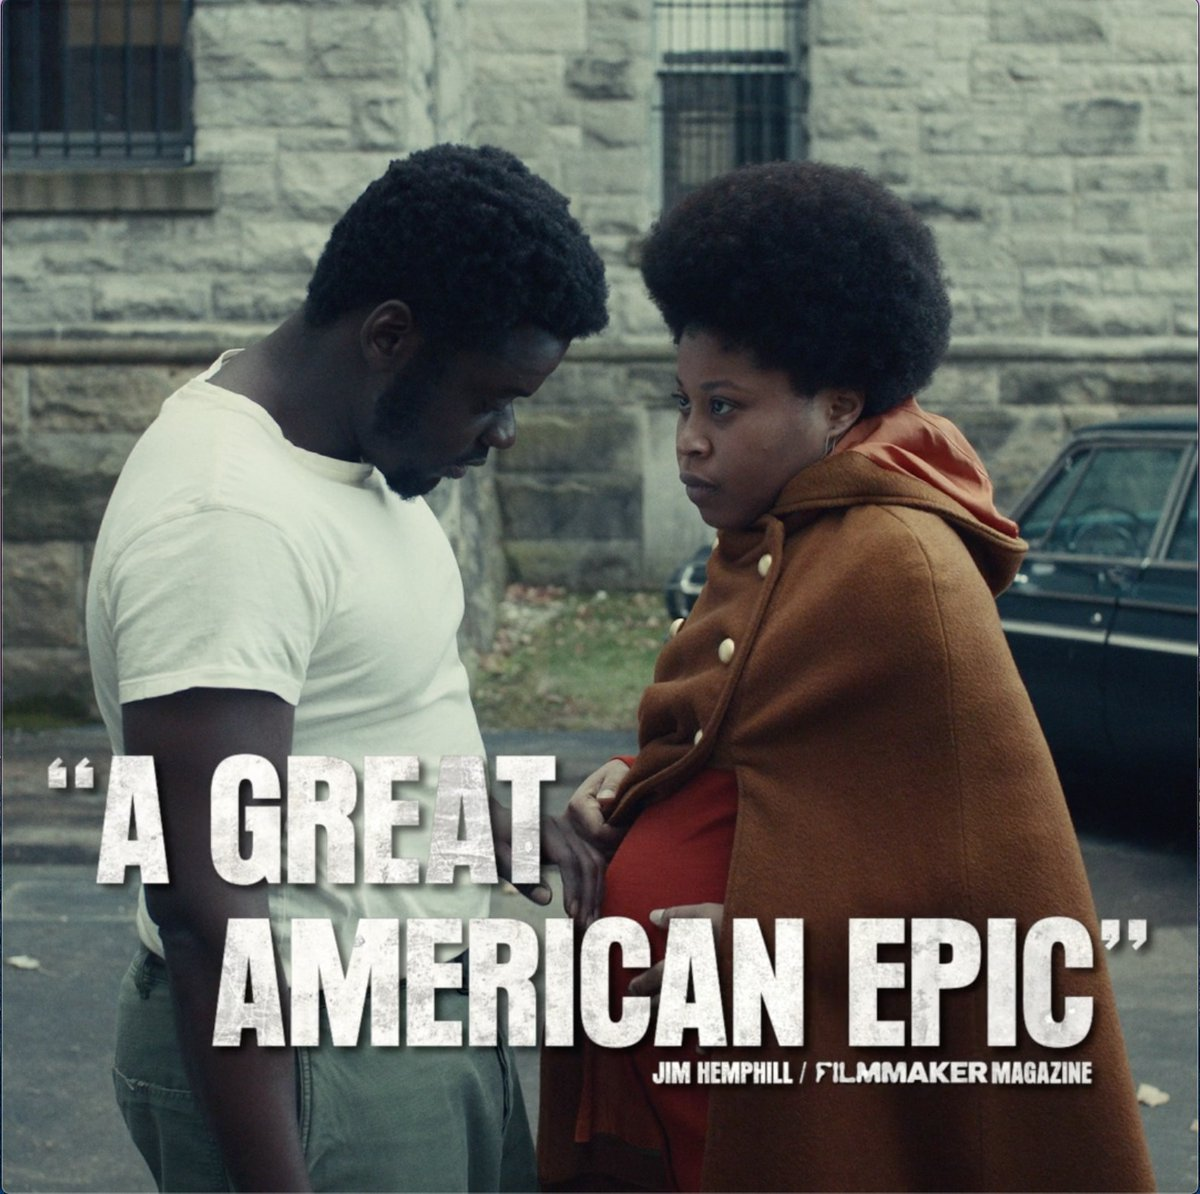 An electrifying, powerful drama, see why #JudasAndTheBlackMessiah is one of the best films of the year. Now playing in theaters & streaming exclusively on @HBOMax* judasandtheblackmessiah.com *Available on HBO Max in the US only for a limited time, at no extra cost to subscribers